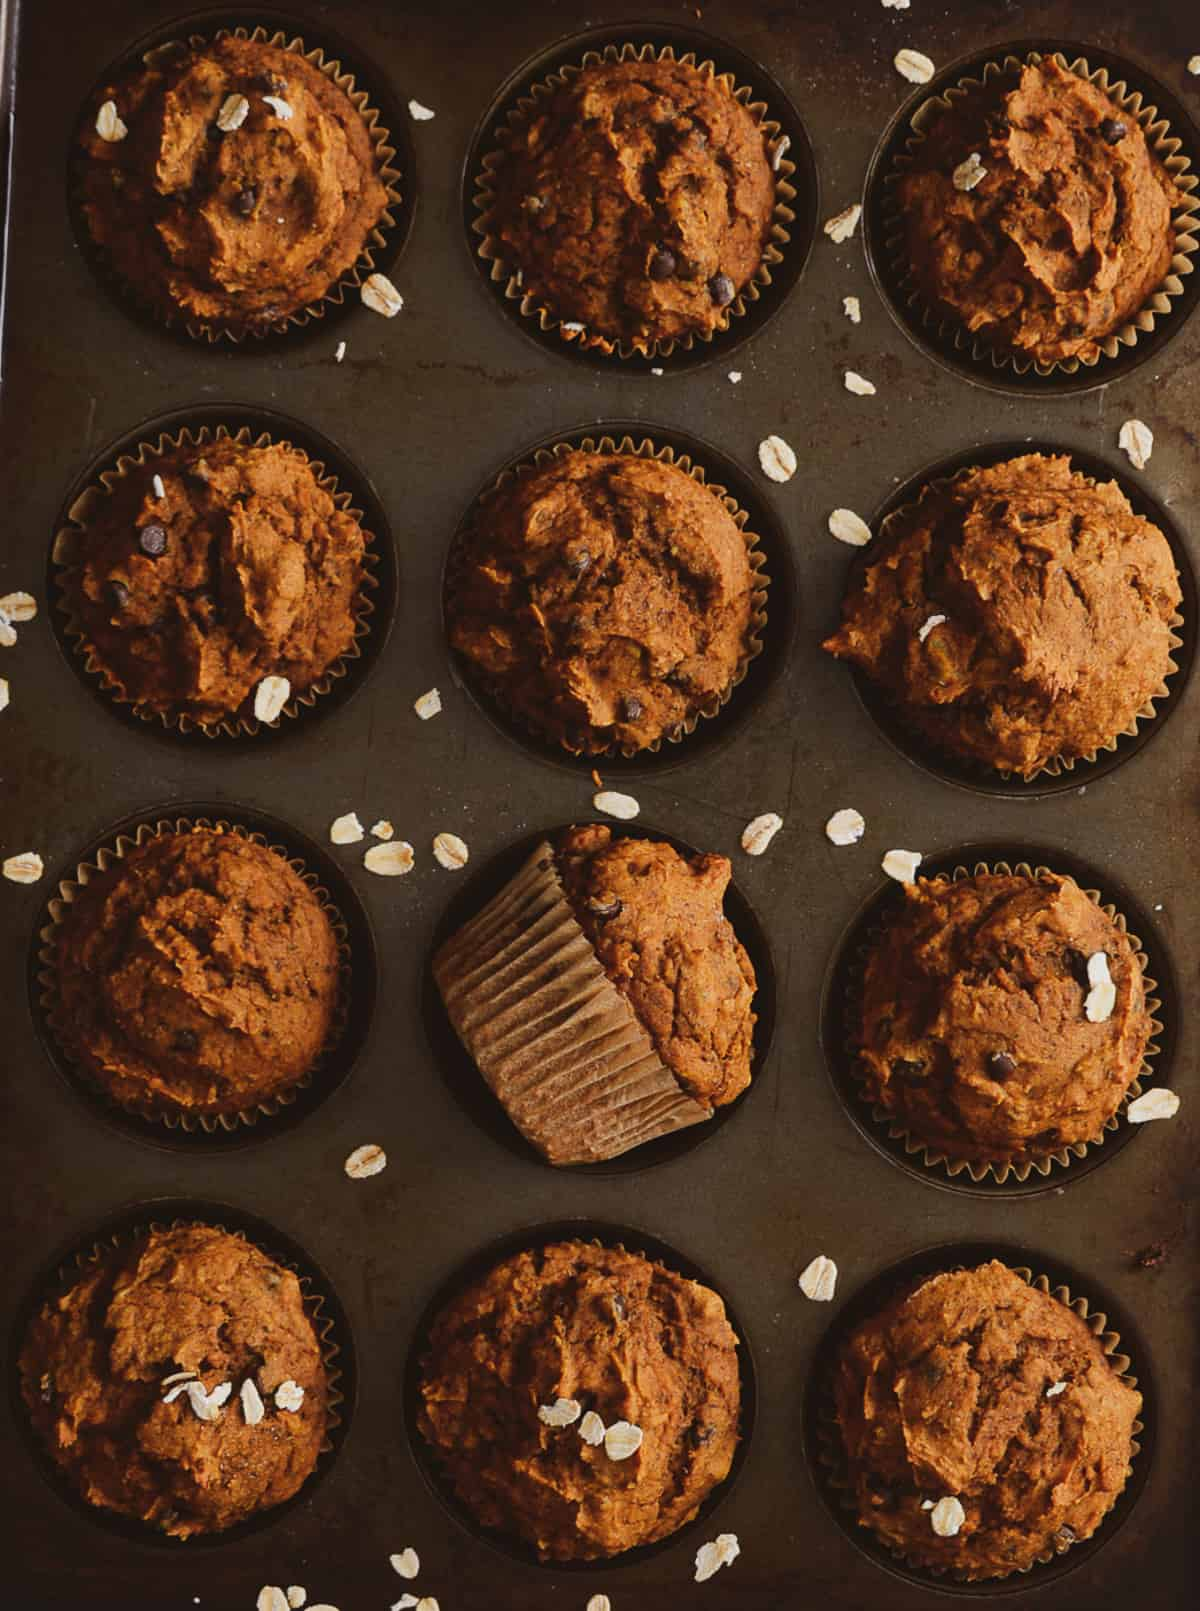 Muffins in baking tray.